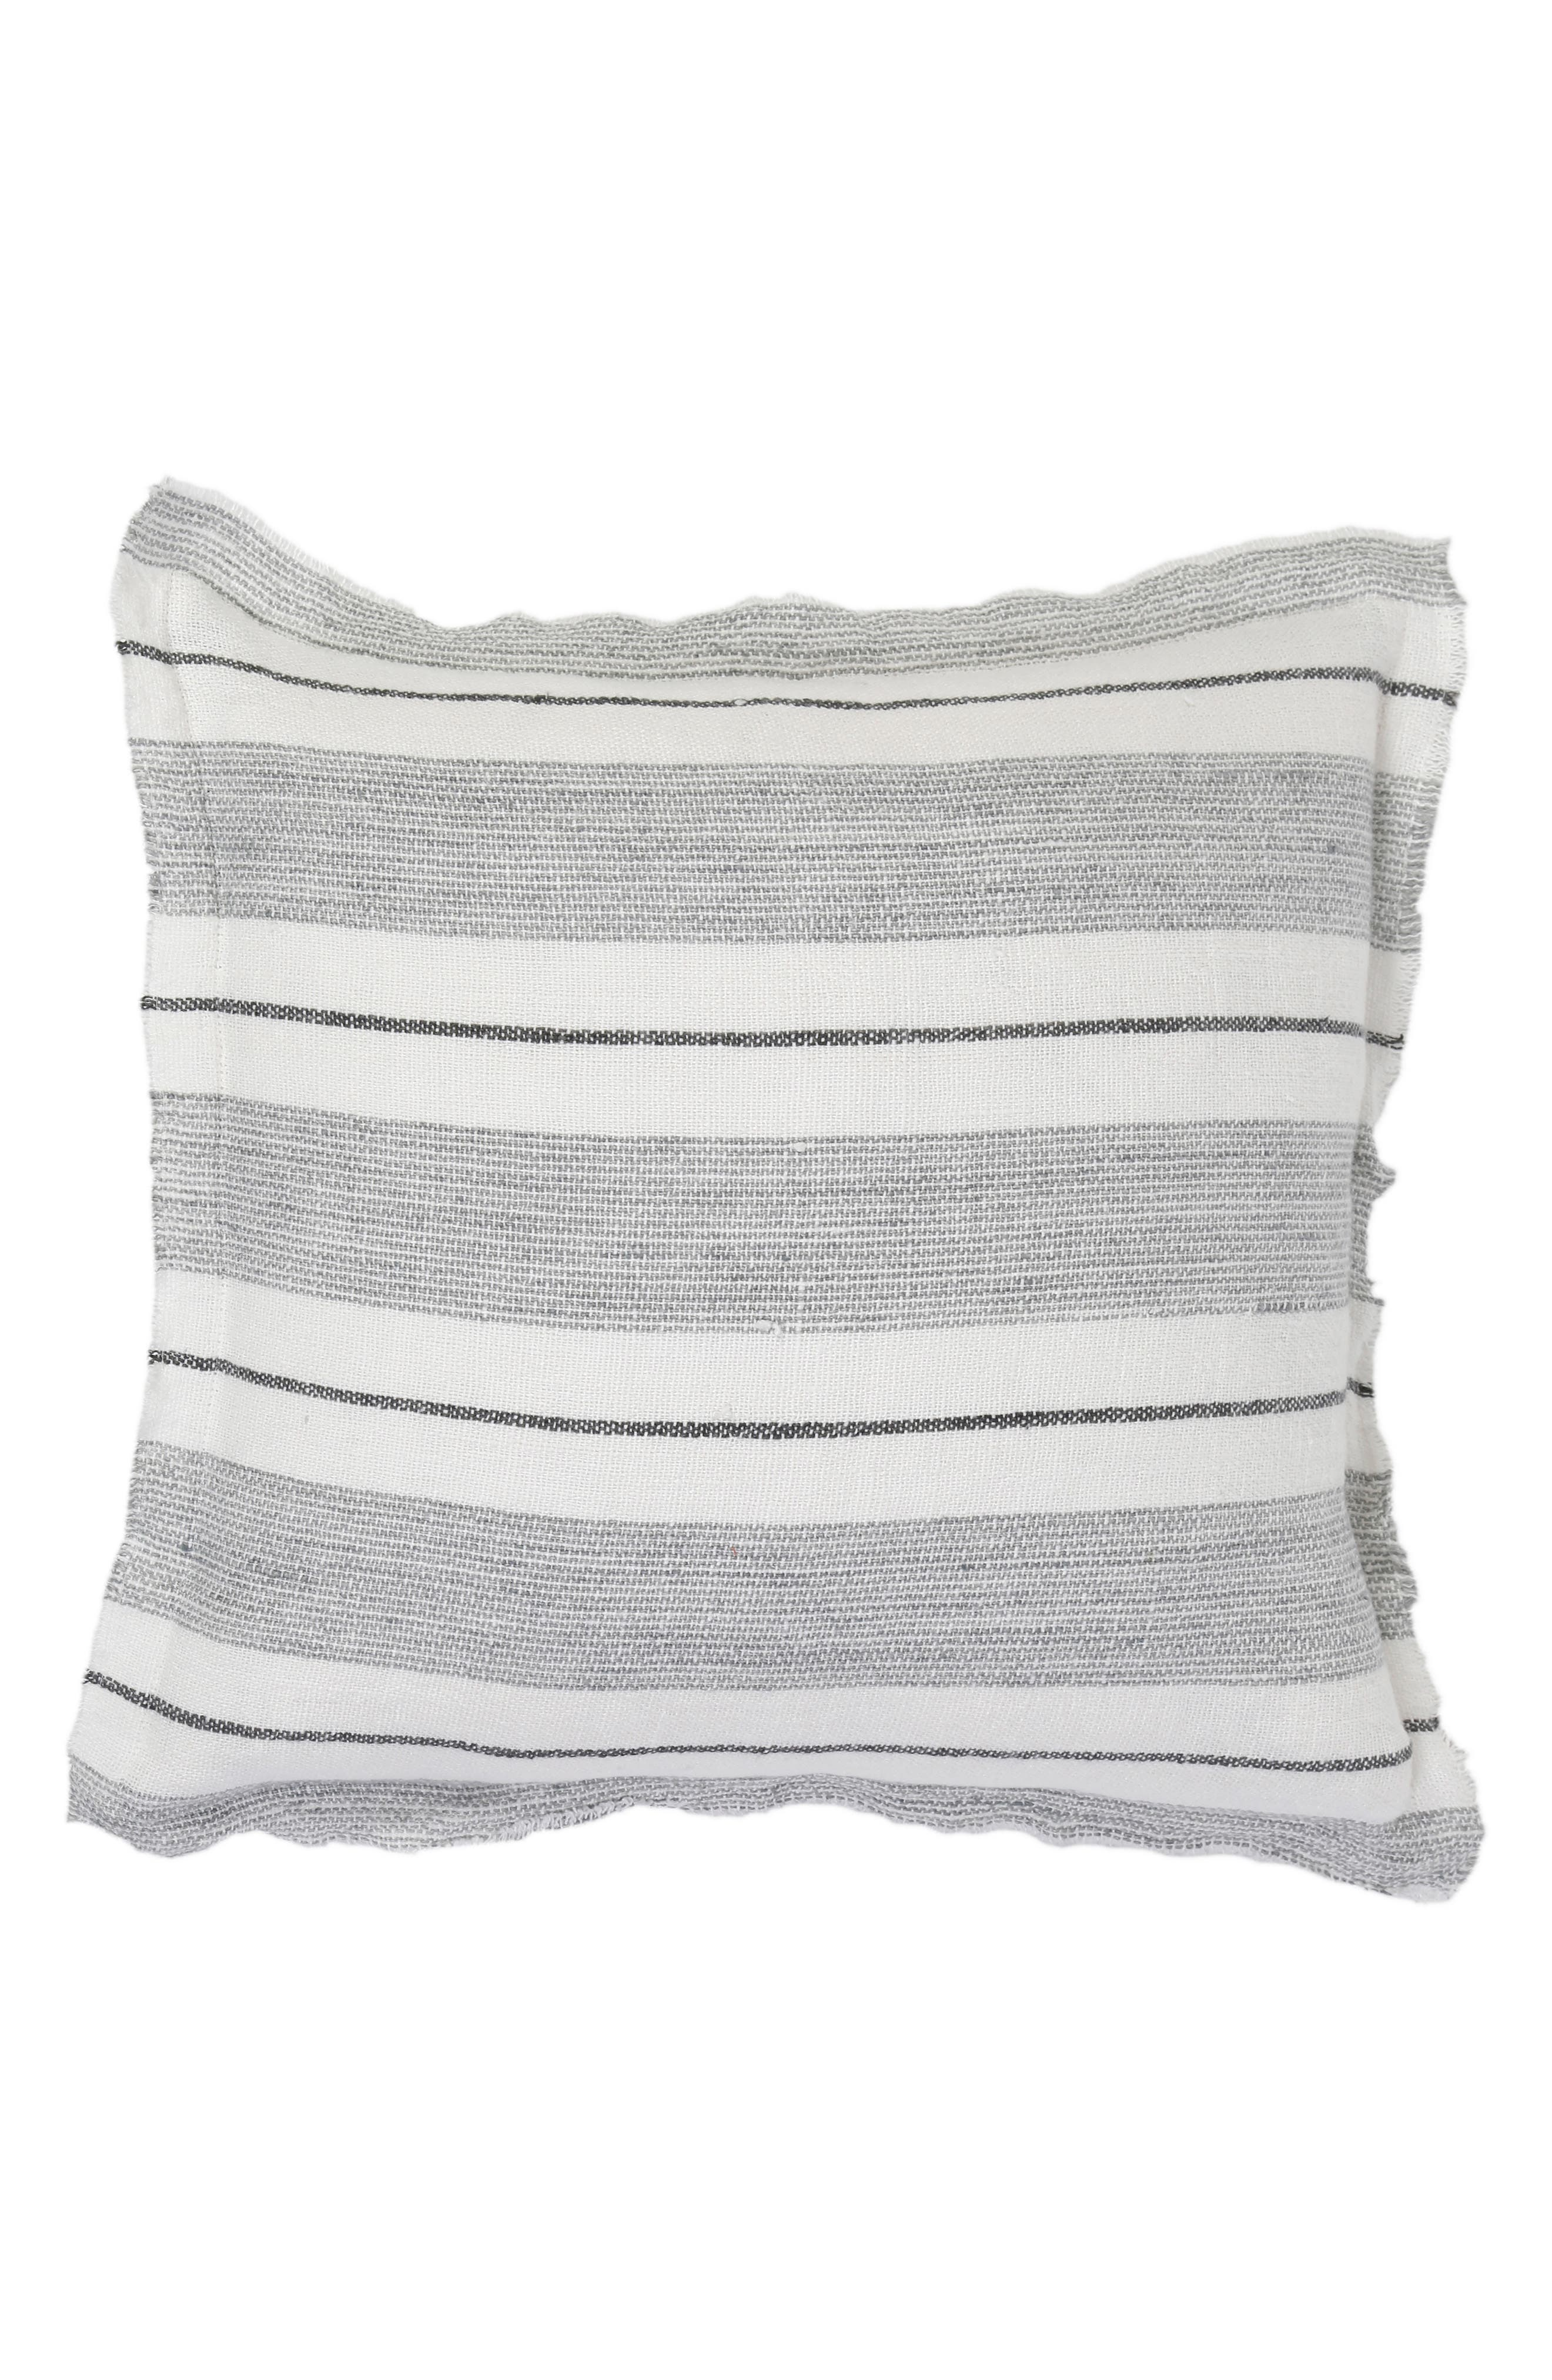 POM POM AT HOME Laguna Accent Pillow, Main, color, GREY/ CHARCOAL